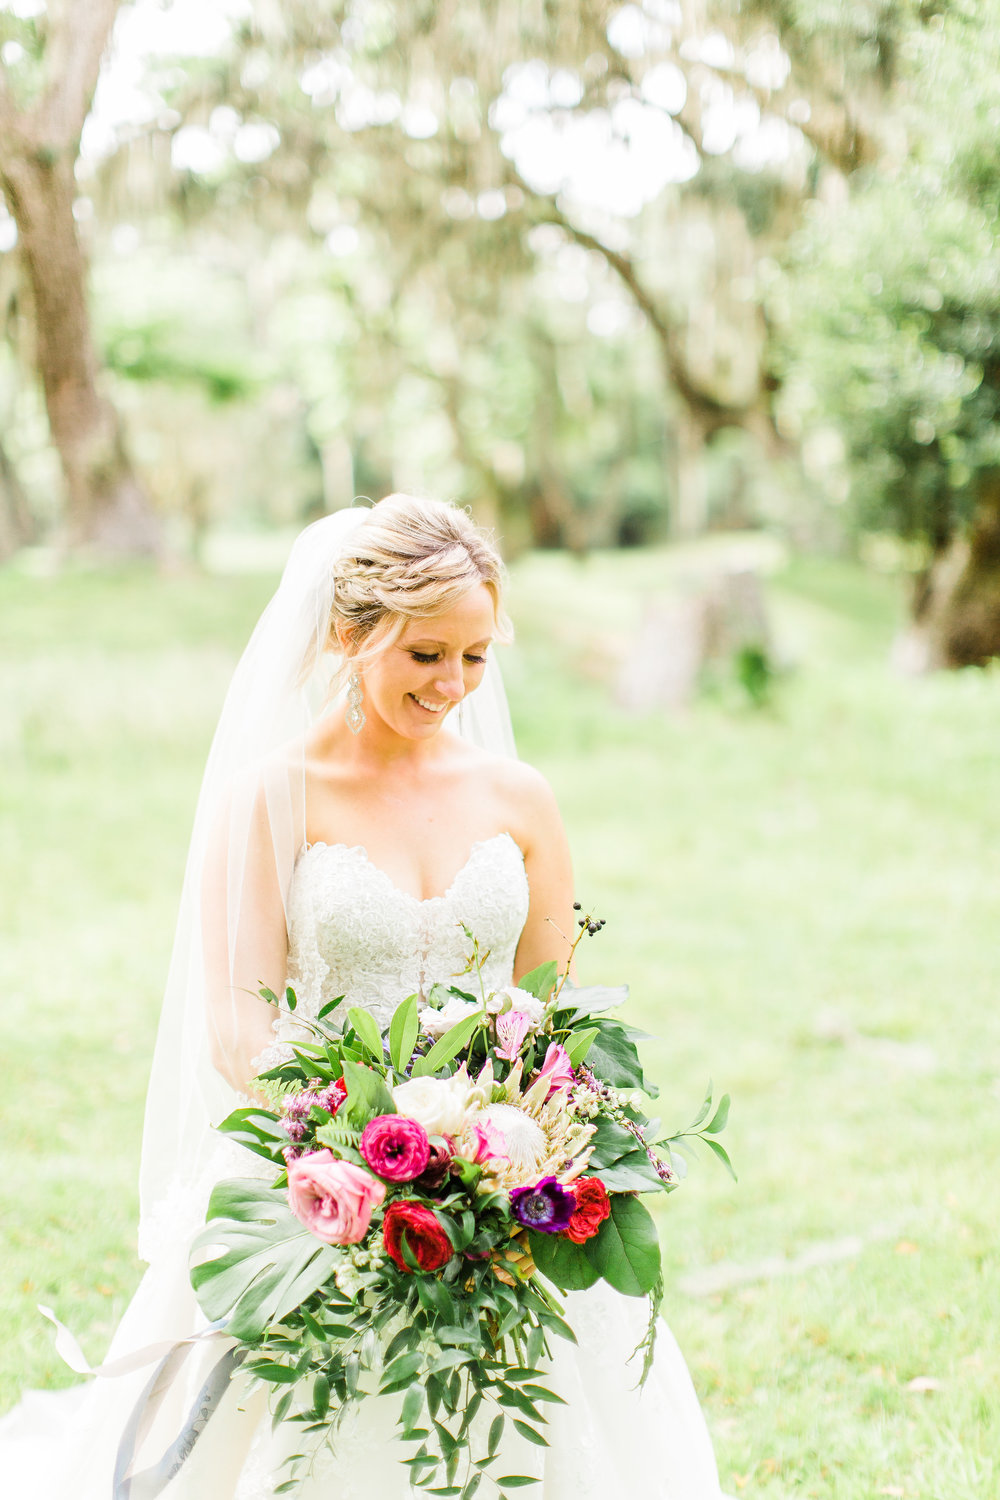 savannah-bridal-shop-i-and-b-couple-gretchen-and-alex-fun-and-unique-tropical-wedding-at-captains-bluff-st-simons-island-wedding-marianne-lucille-photography-14.jpg